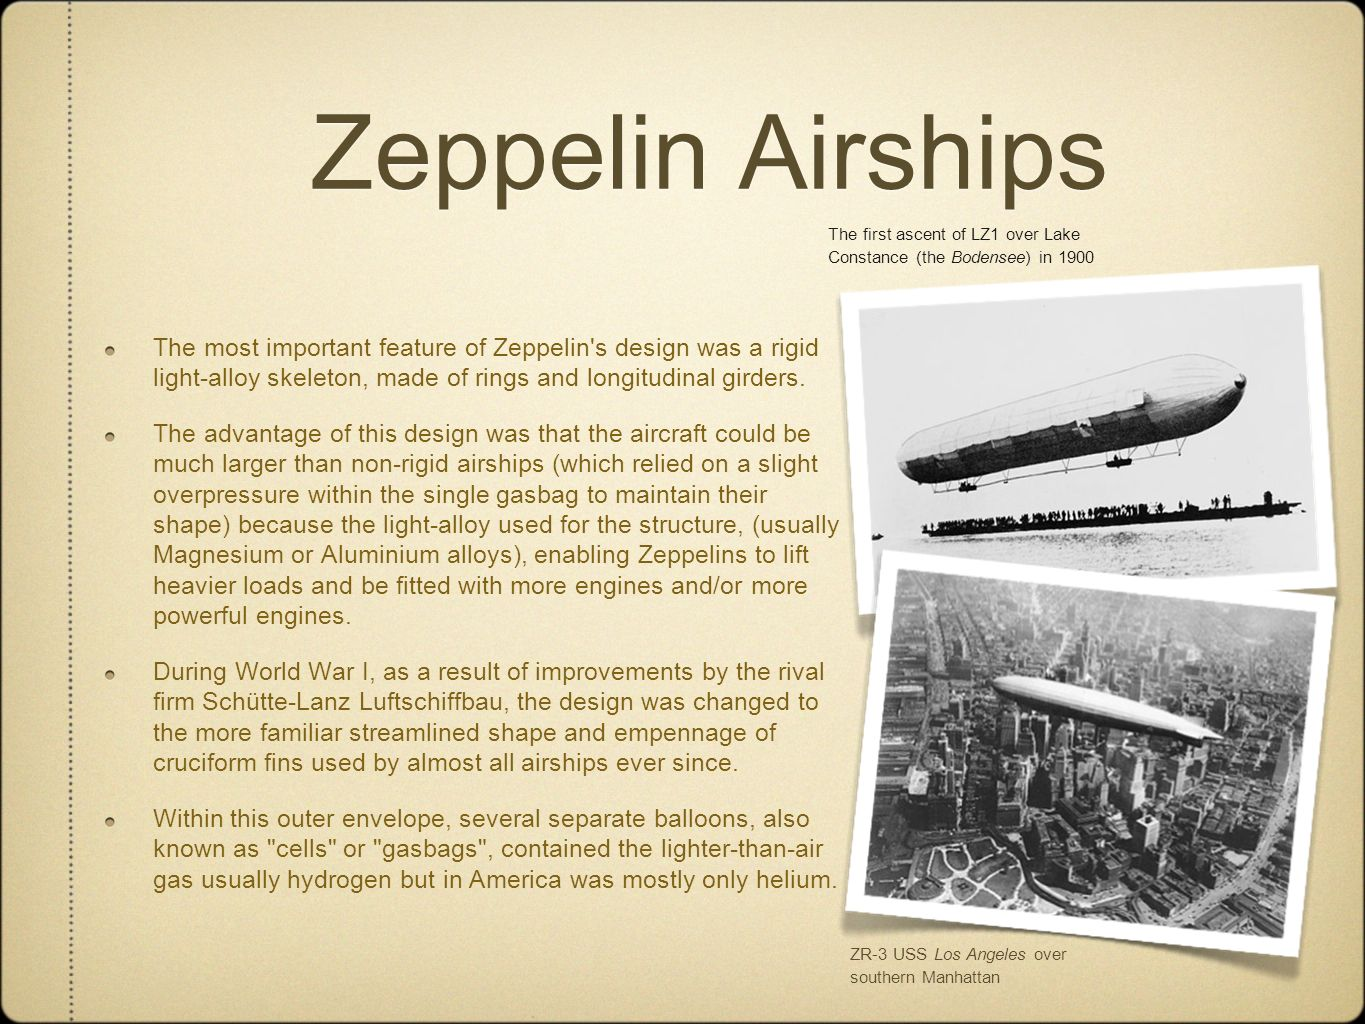 Zeppelin Airships The most important feature of Zeppelin's design was a rigid light-alloy skeleton, made of rings and longitudinal girders. The advant